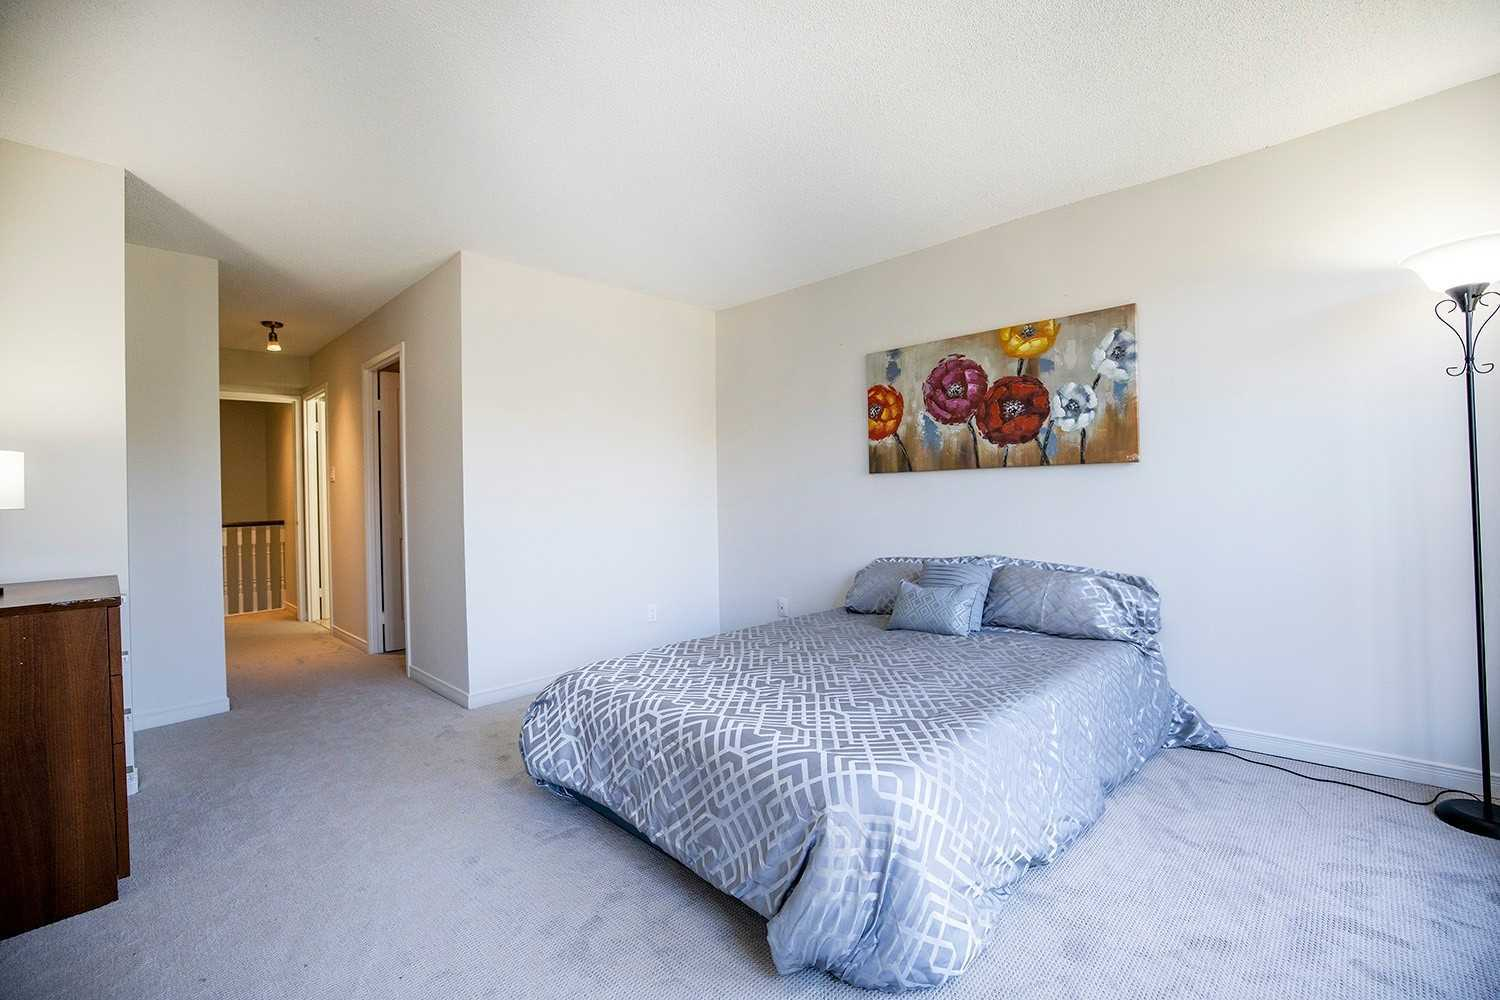 Image 4 of 20 showing inside of 2 Bedroom Condo Apt 2-Storey for Sale at 25 Cumberland Lane Unit# 112, Ajax L1S7K1